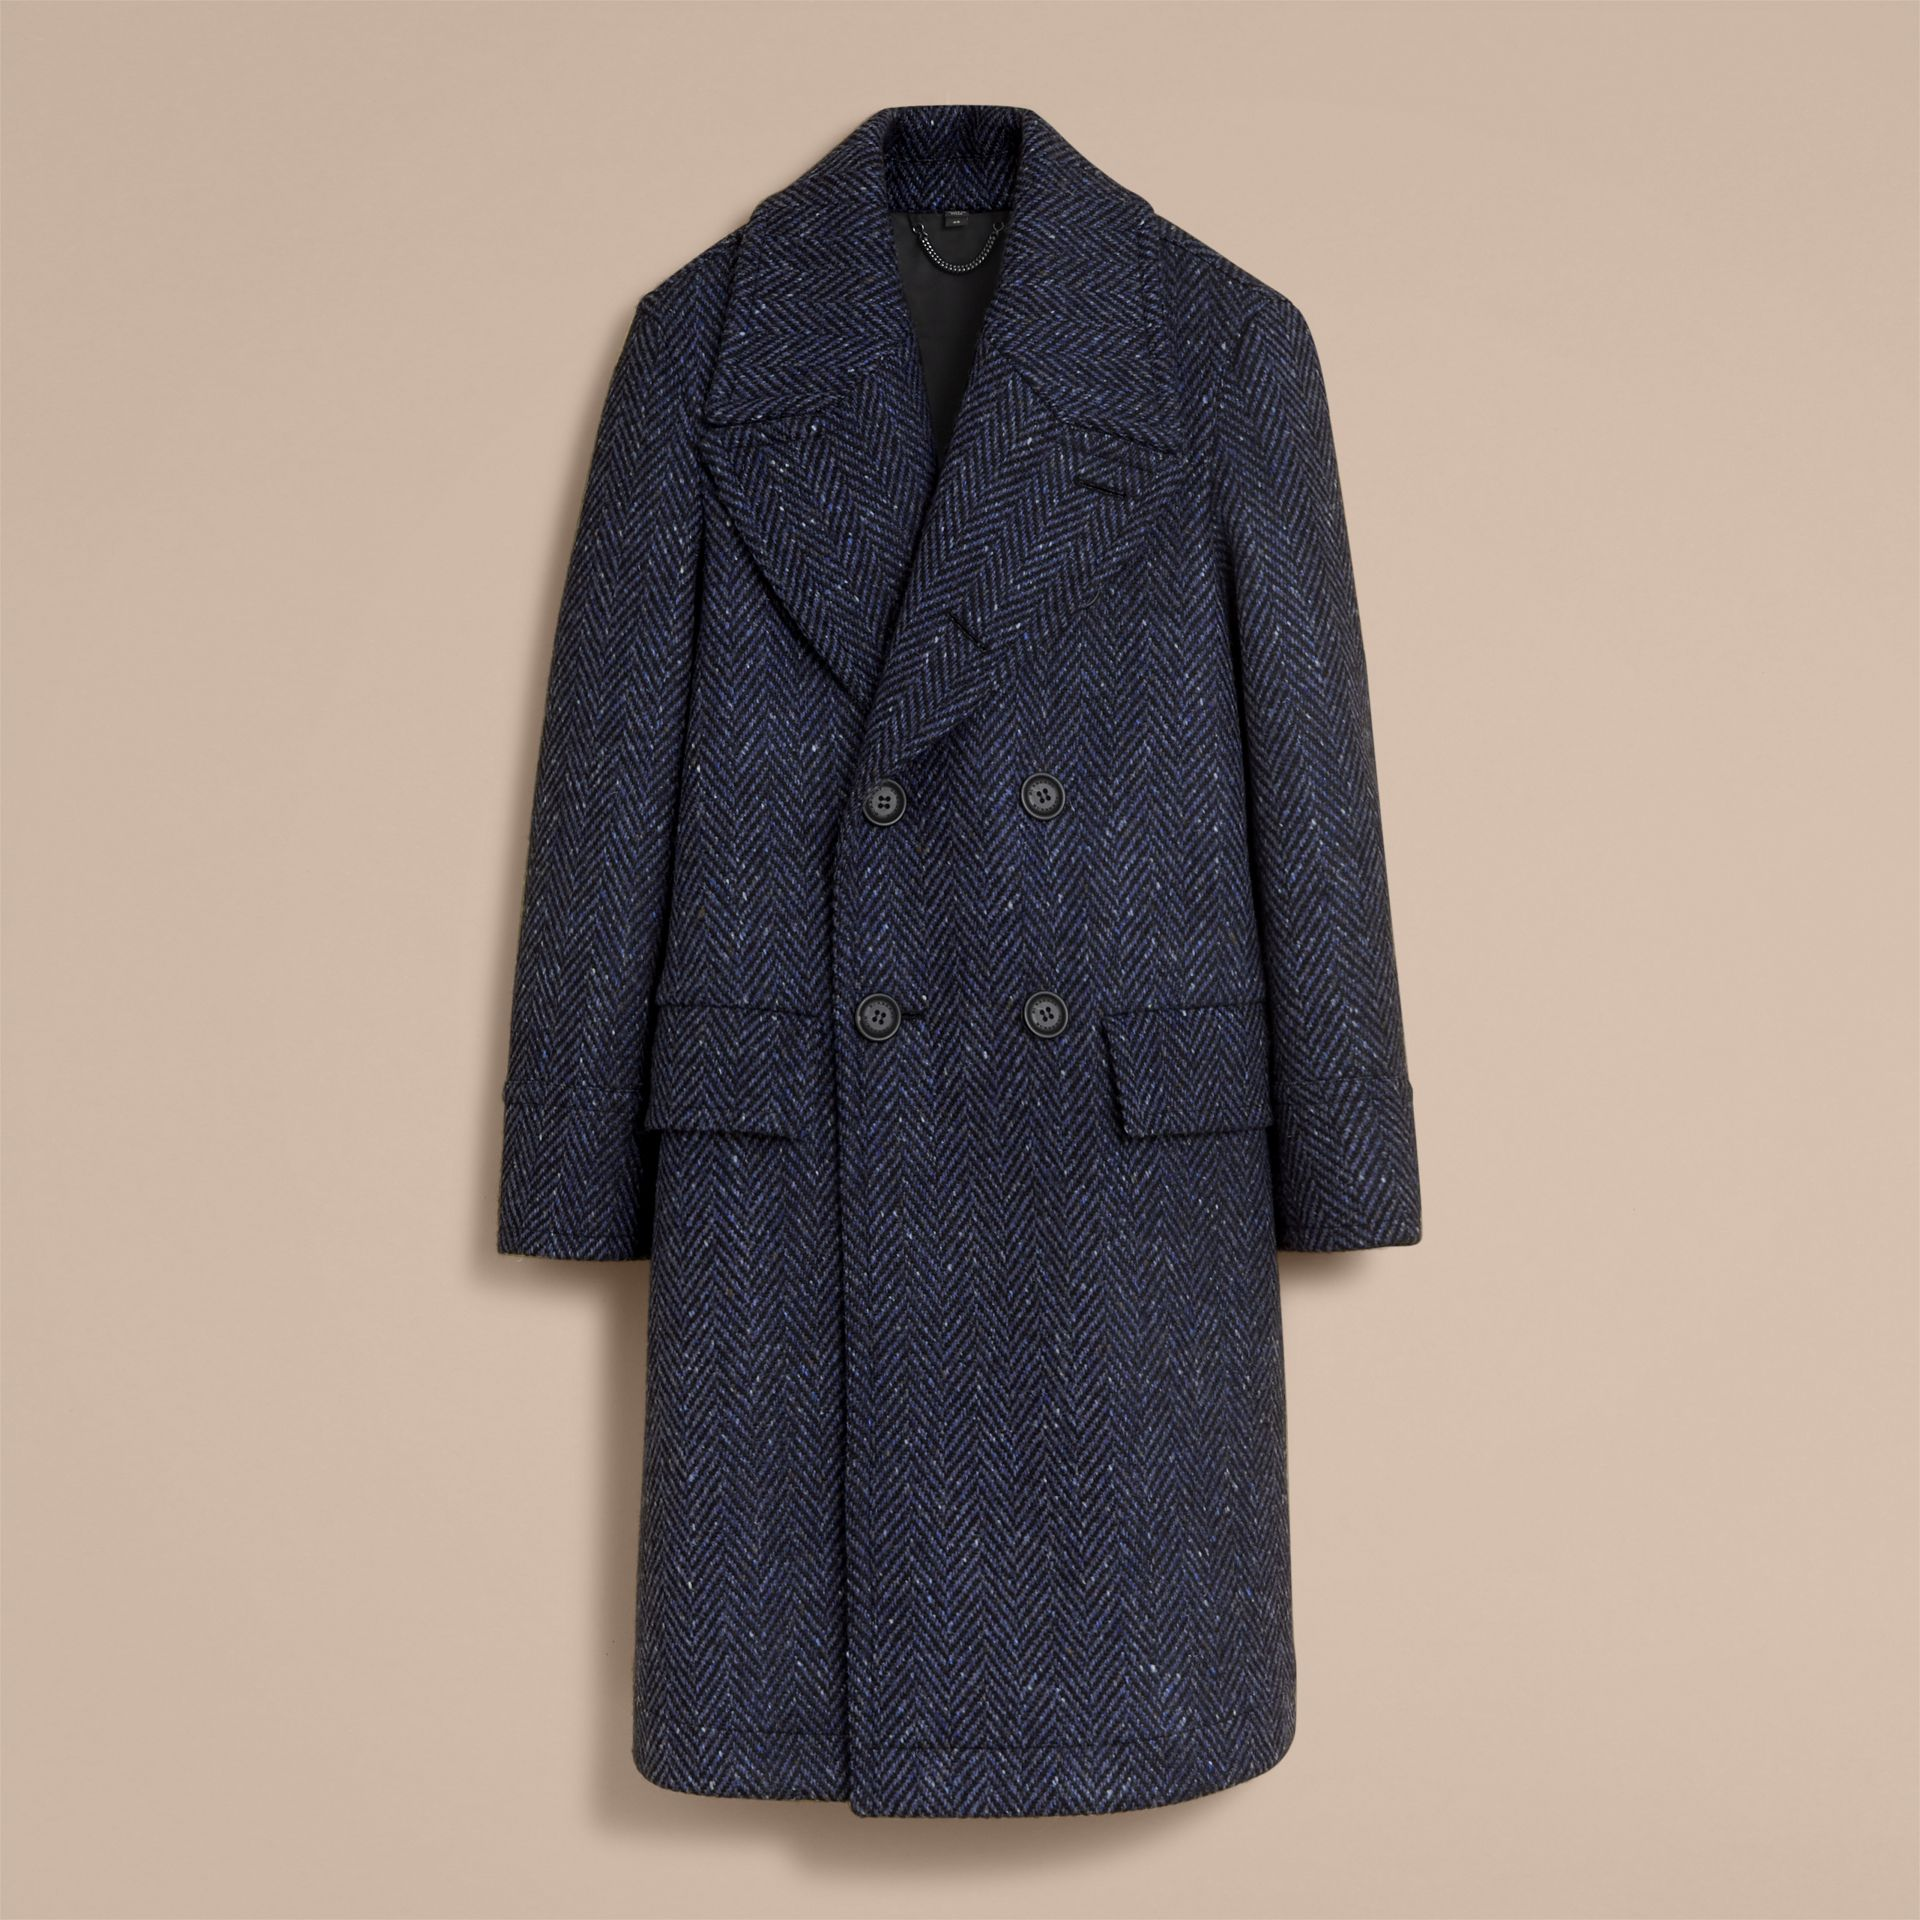 Donegal Herringbone Wool Tweed Topcoat - Men | Burberry - gallery image 4